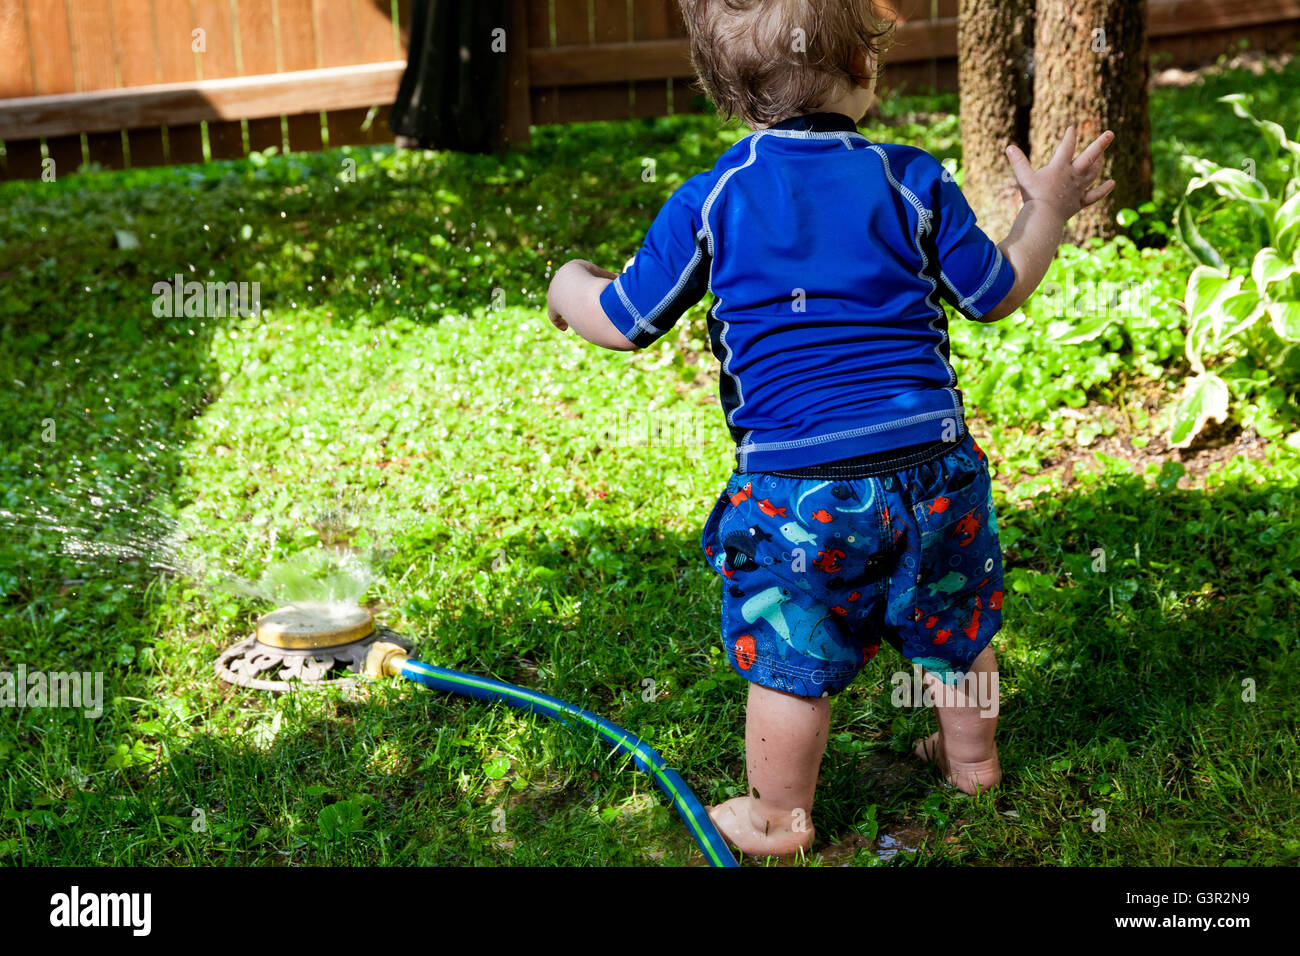 Baby Caucasian Boy and Mother playing in his backyard with a garden sprinkler - Stock Image